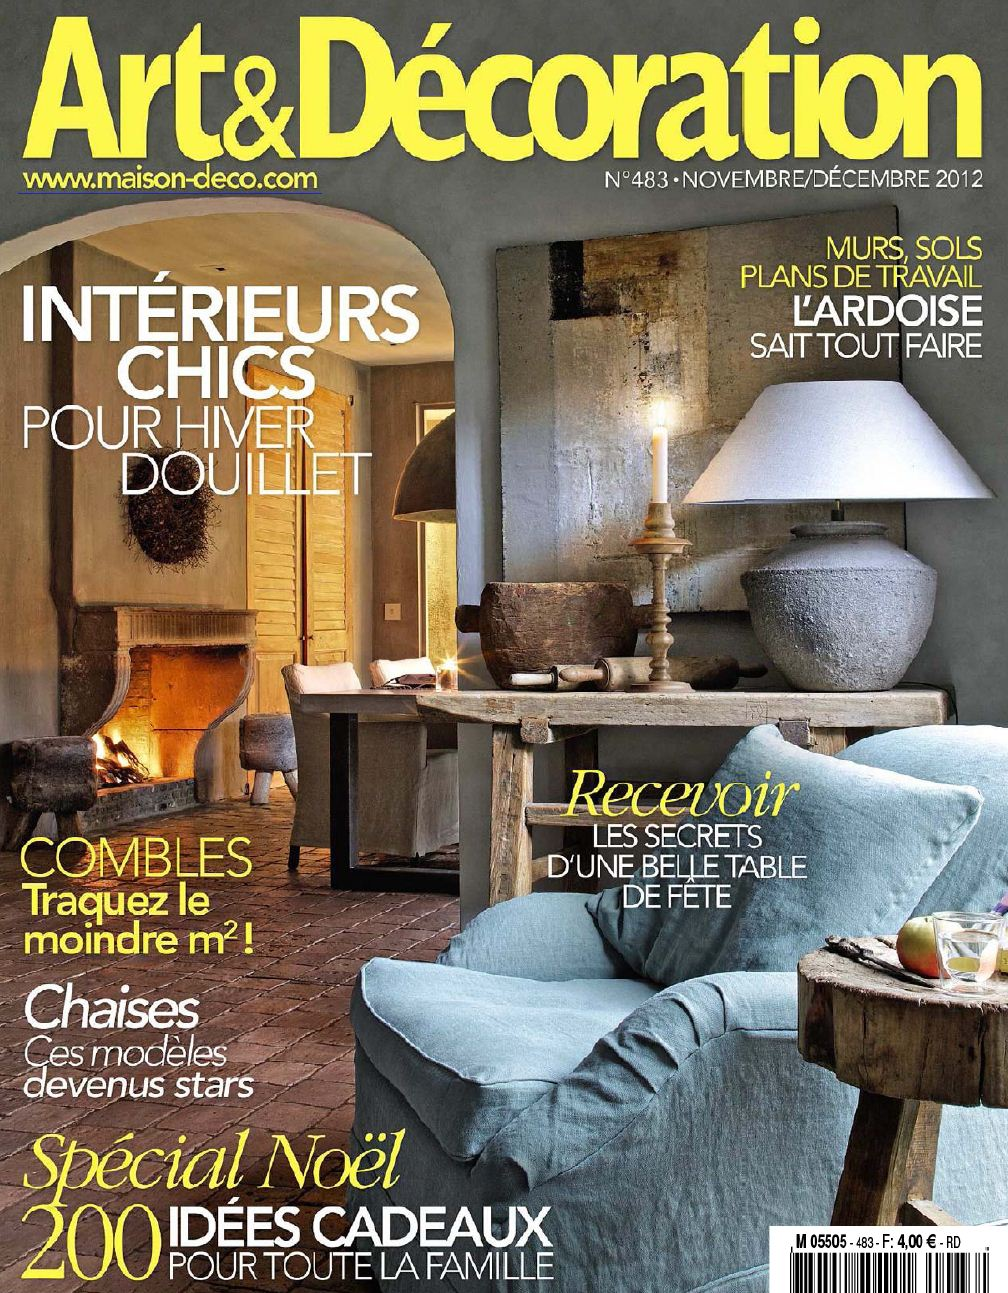 Un int rieur moderne des id es dans un magazine d co for Deco idees magazine